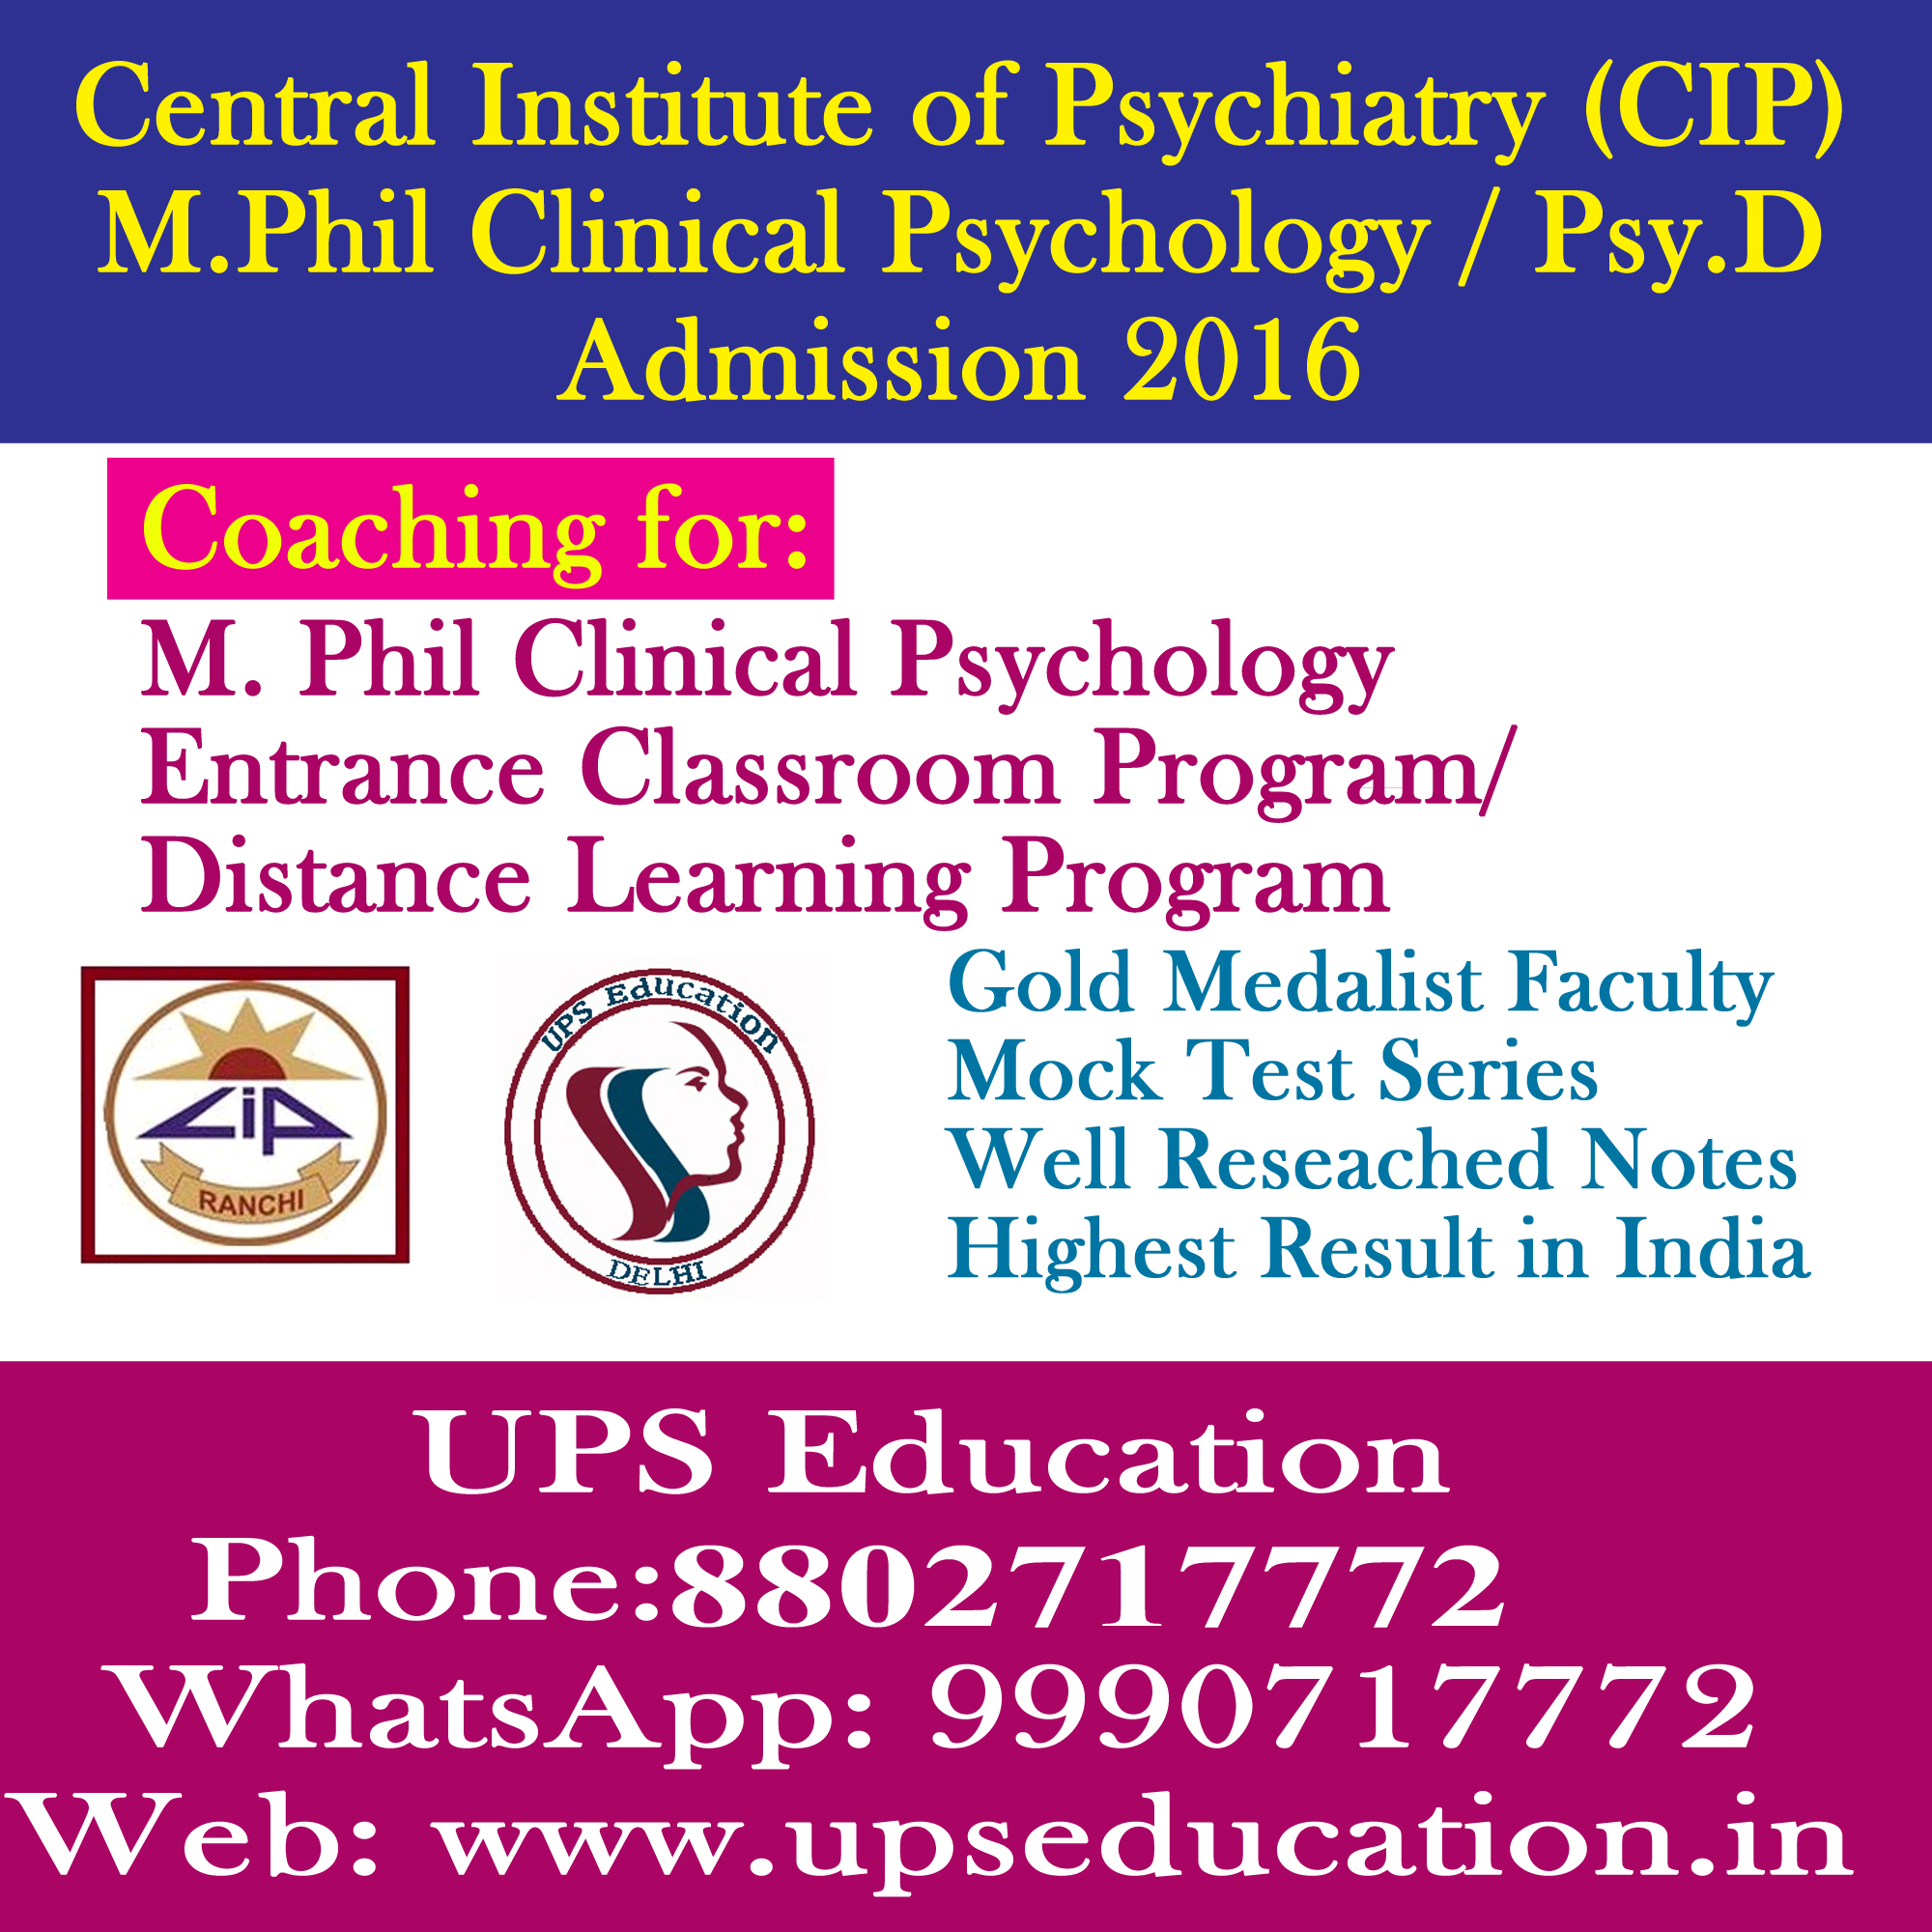 Is Distance Masters Degree in psychology from IGNOU accredited and eligible for PHd in USA?